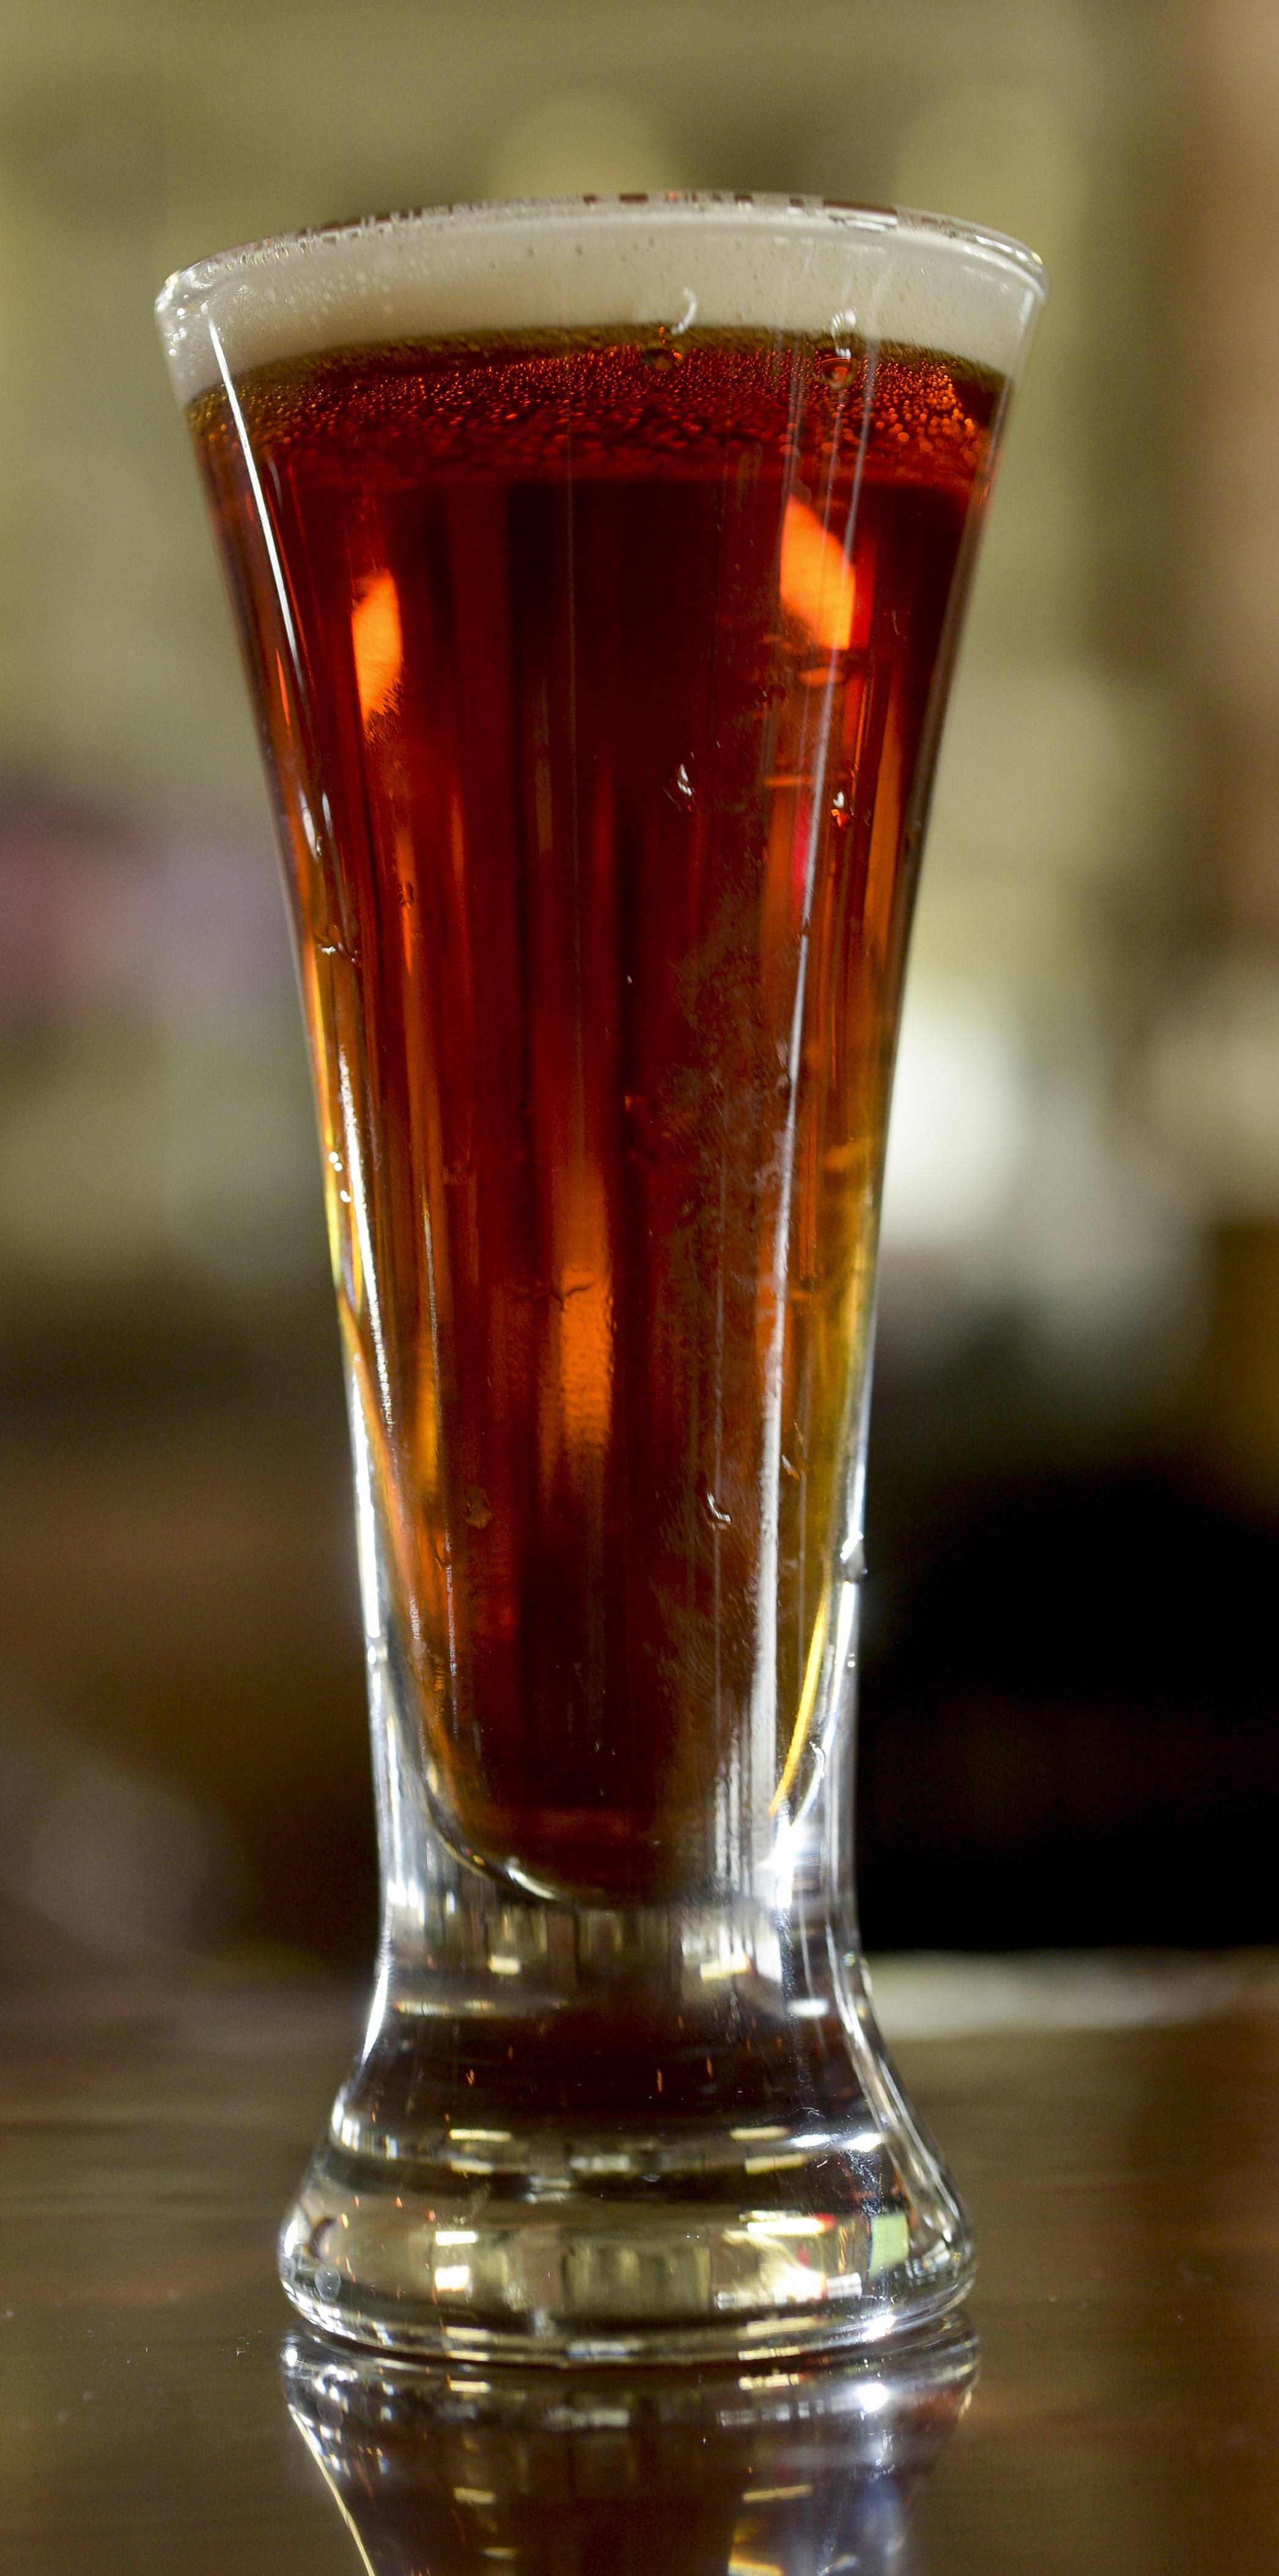 Hopvine Brewing Company Restaurant & Brewery in Aurora has a large selection of craft beers brewed on site by Brewmaster Ken McMullen, including such drafts as the Aurora Amber.